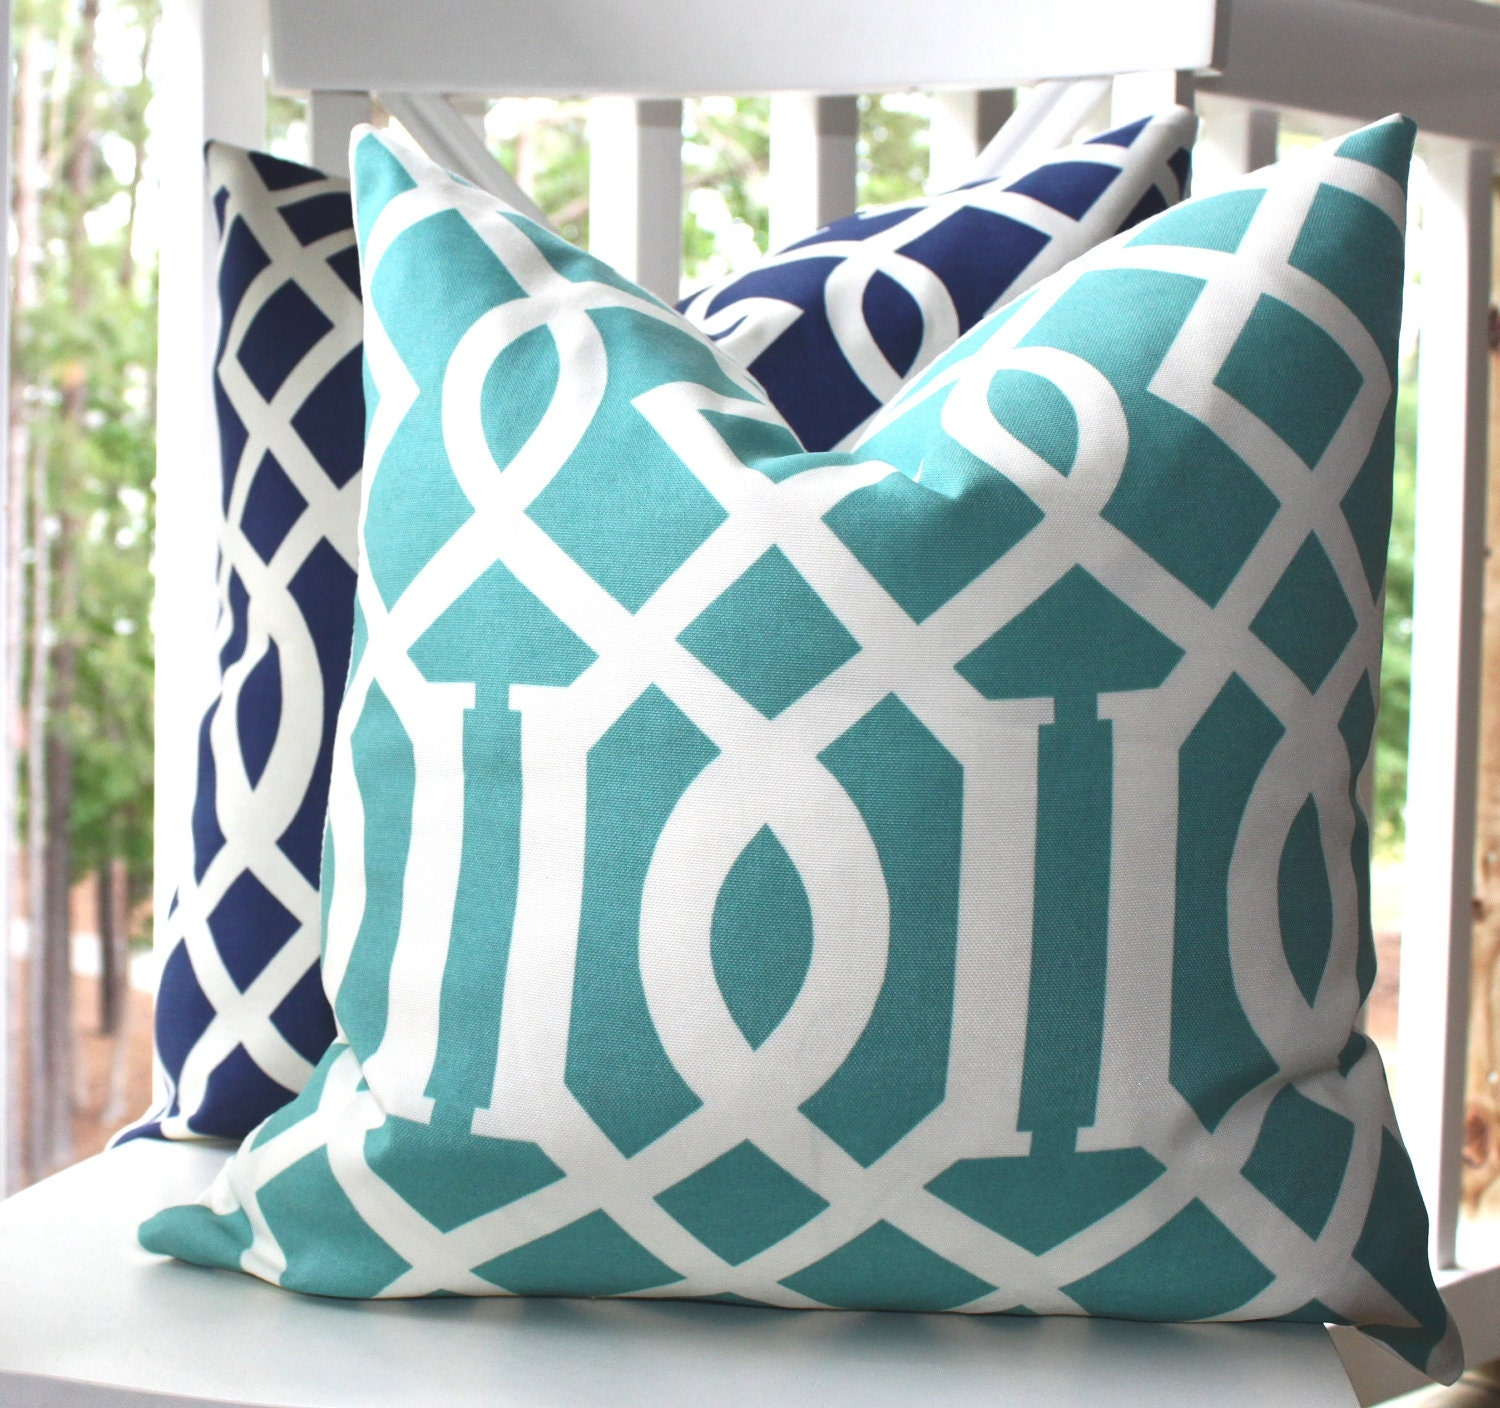 Decorative Pillow Cover 18x18 Aqua Teal Blue by MotifPillows